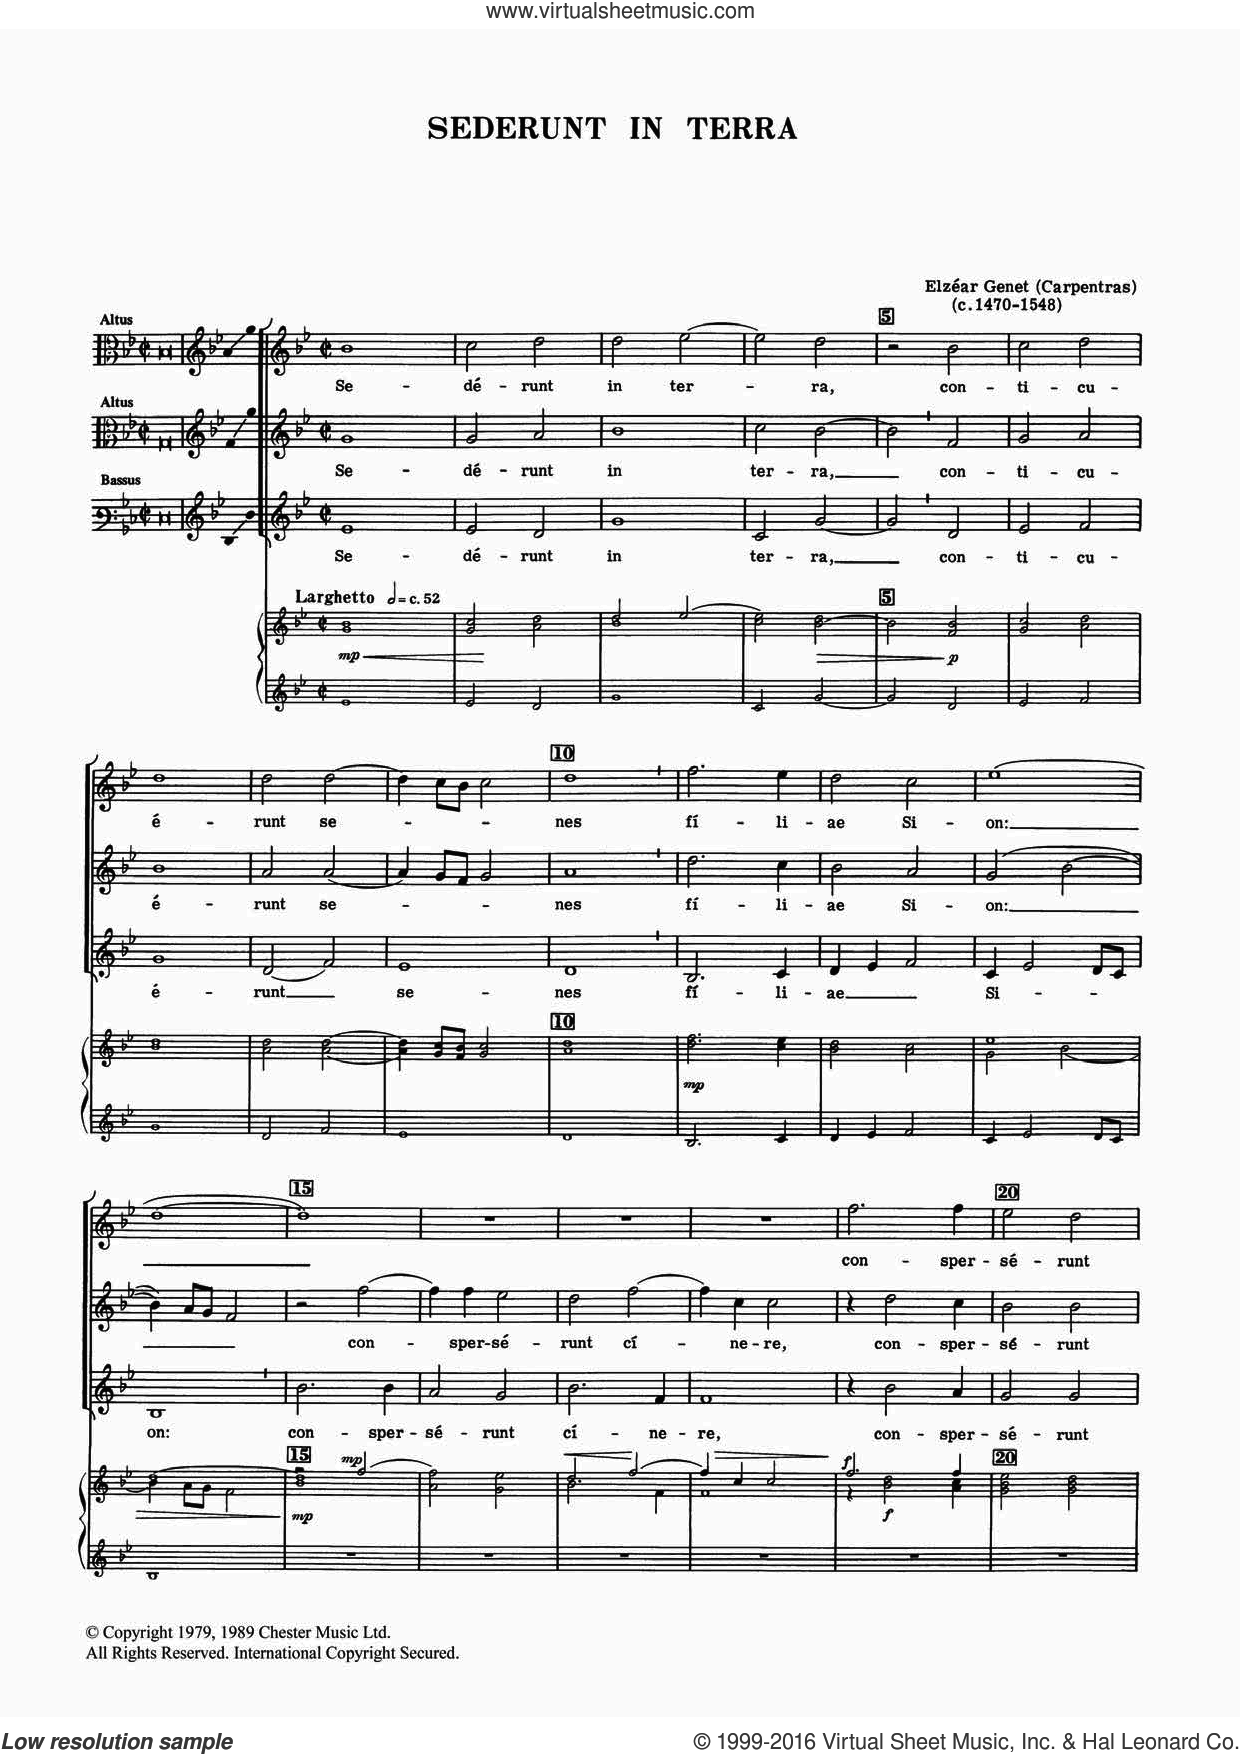 Sederunt In Terra sheet music for voice, piano or guitar by Elzear Genet. Score Image Preview.